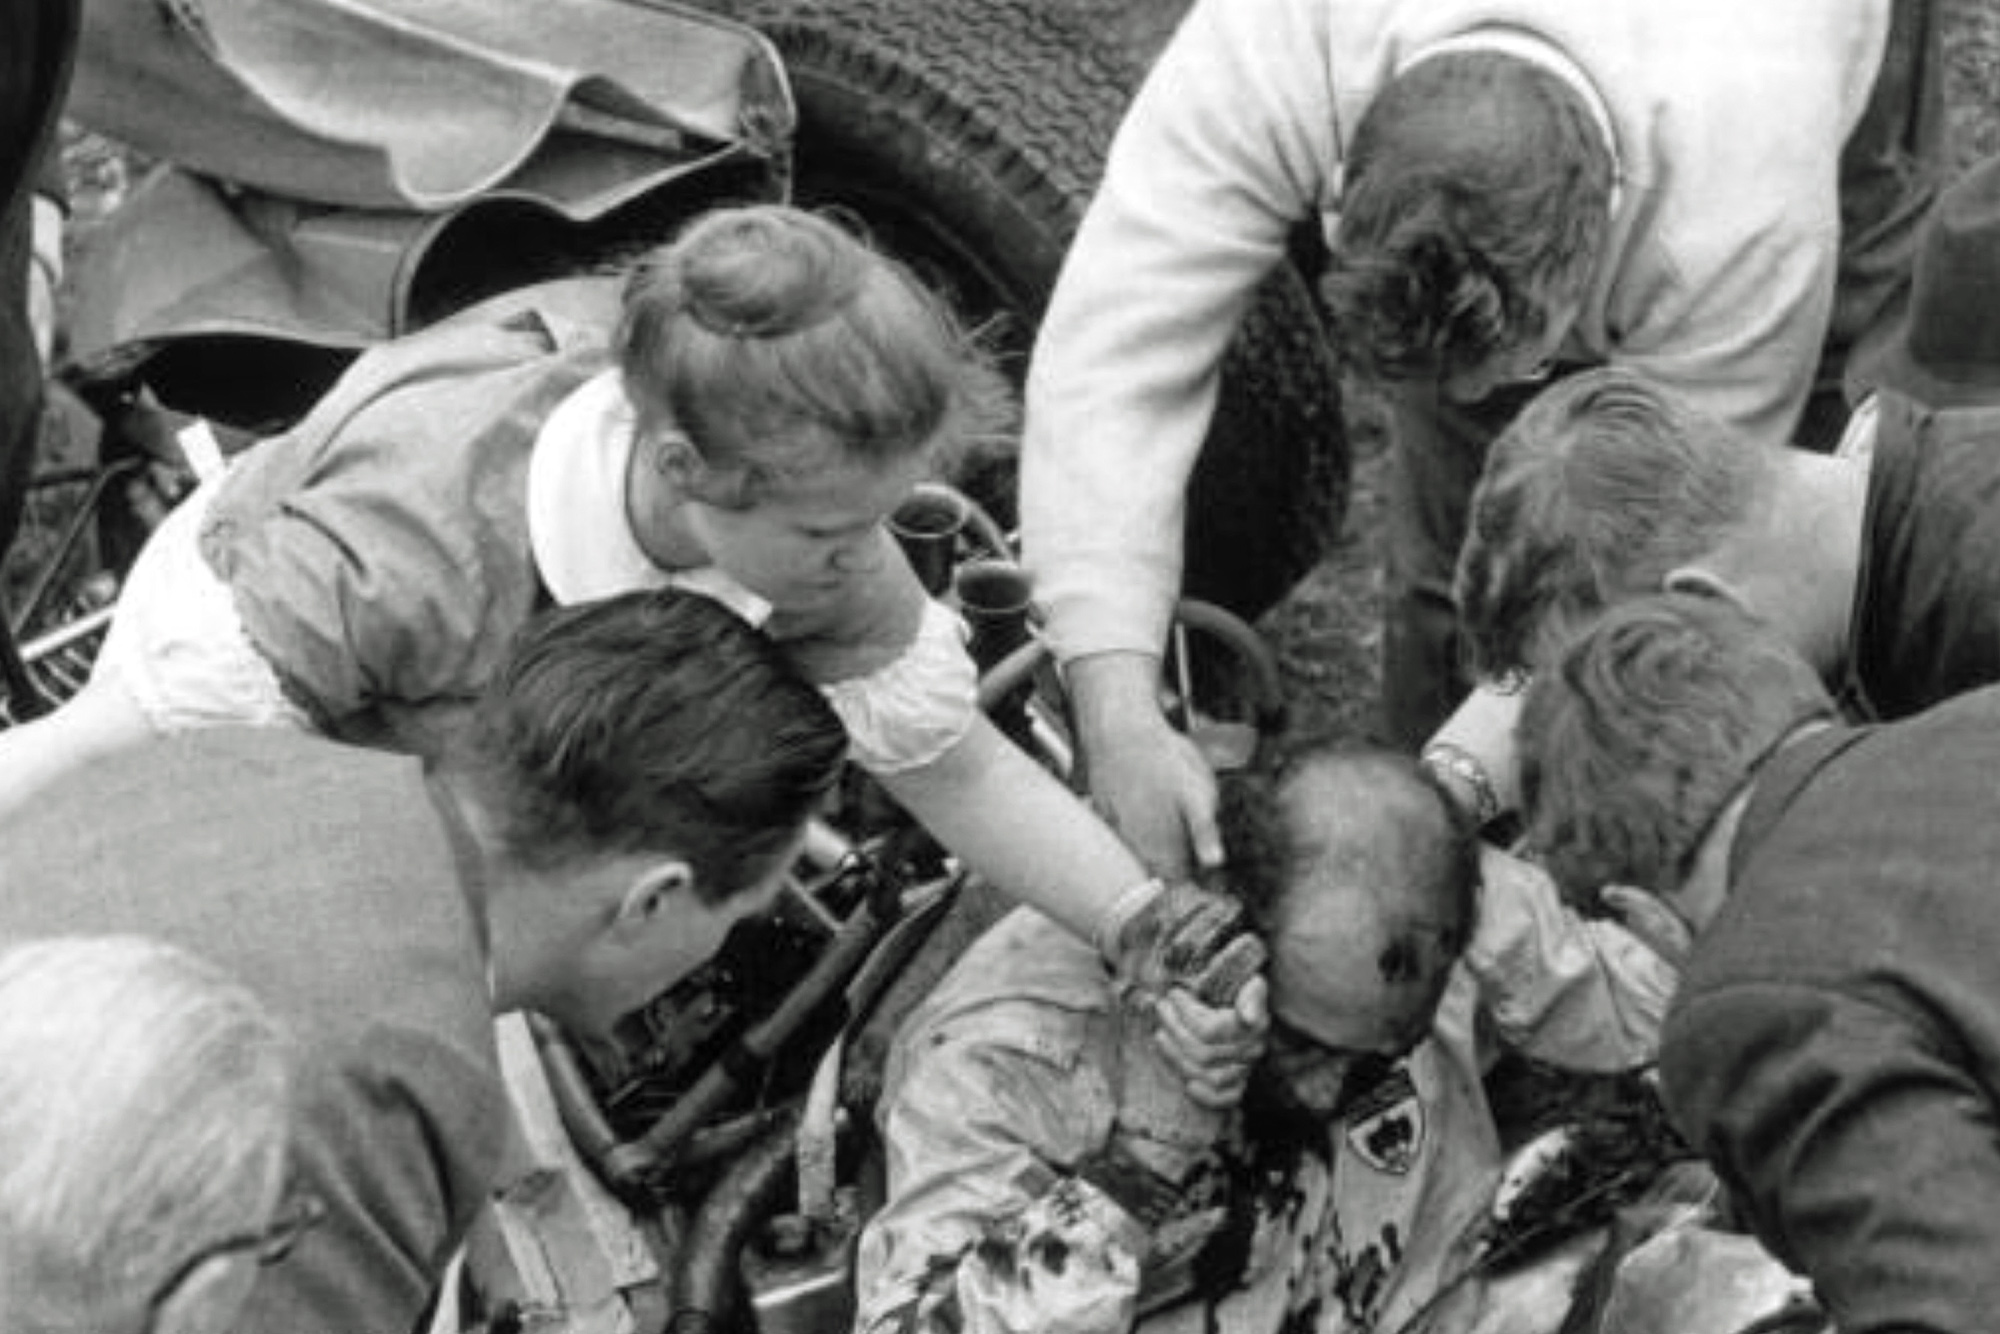 Stirling Moss is pulled from the wreckage of his car at Goodwood in 1962